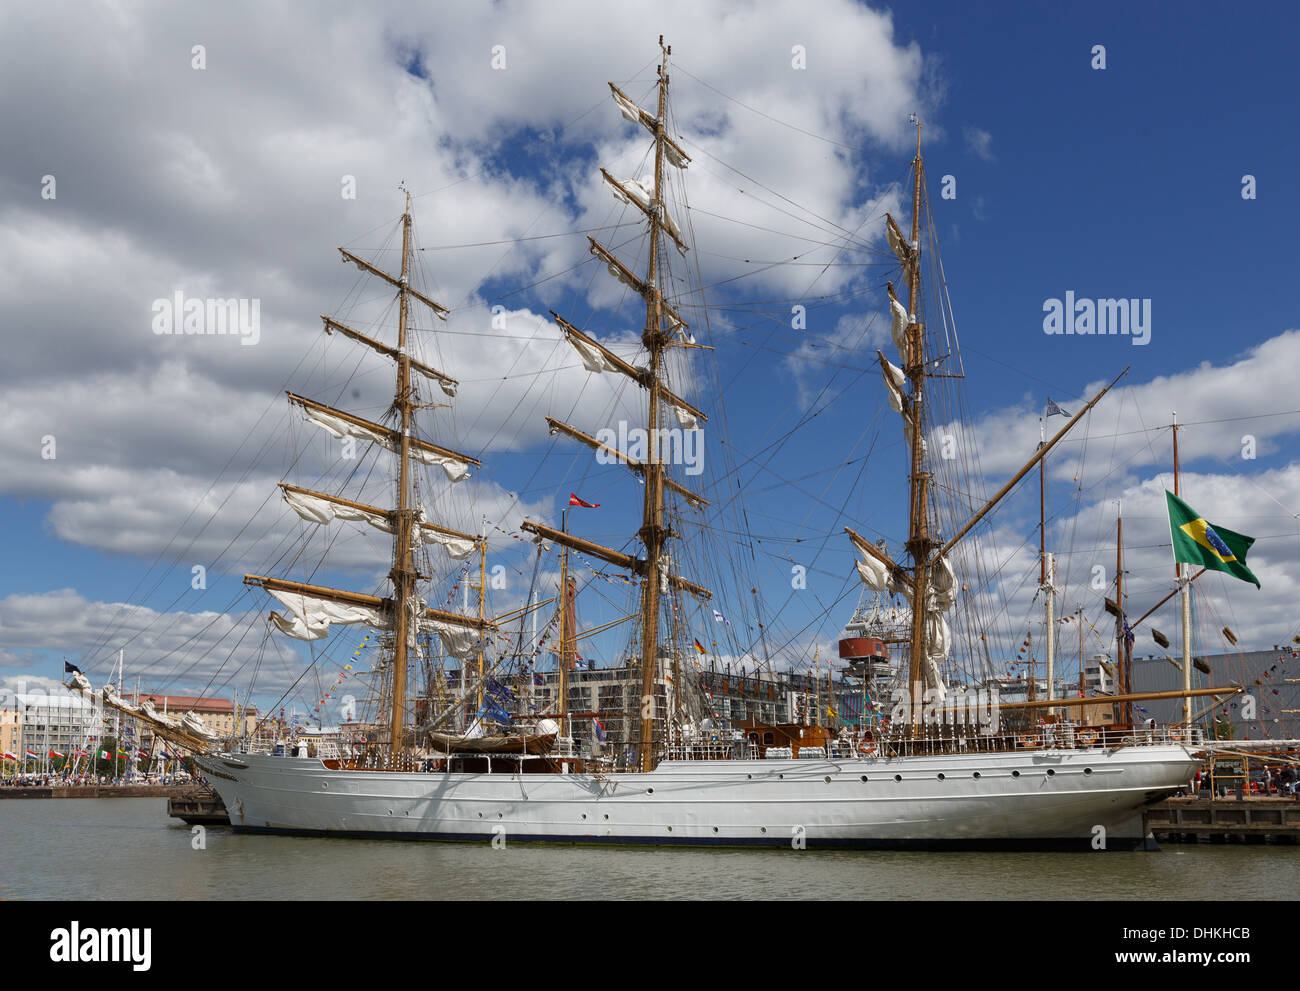 Cisne Branco, a sail training vessel of the Brazilian Navy, moored at the West Harbor of Helsinki for The Tall Ships Races 2013. - Stock Image